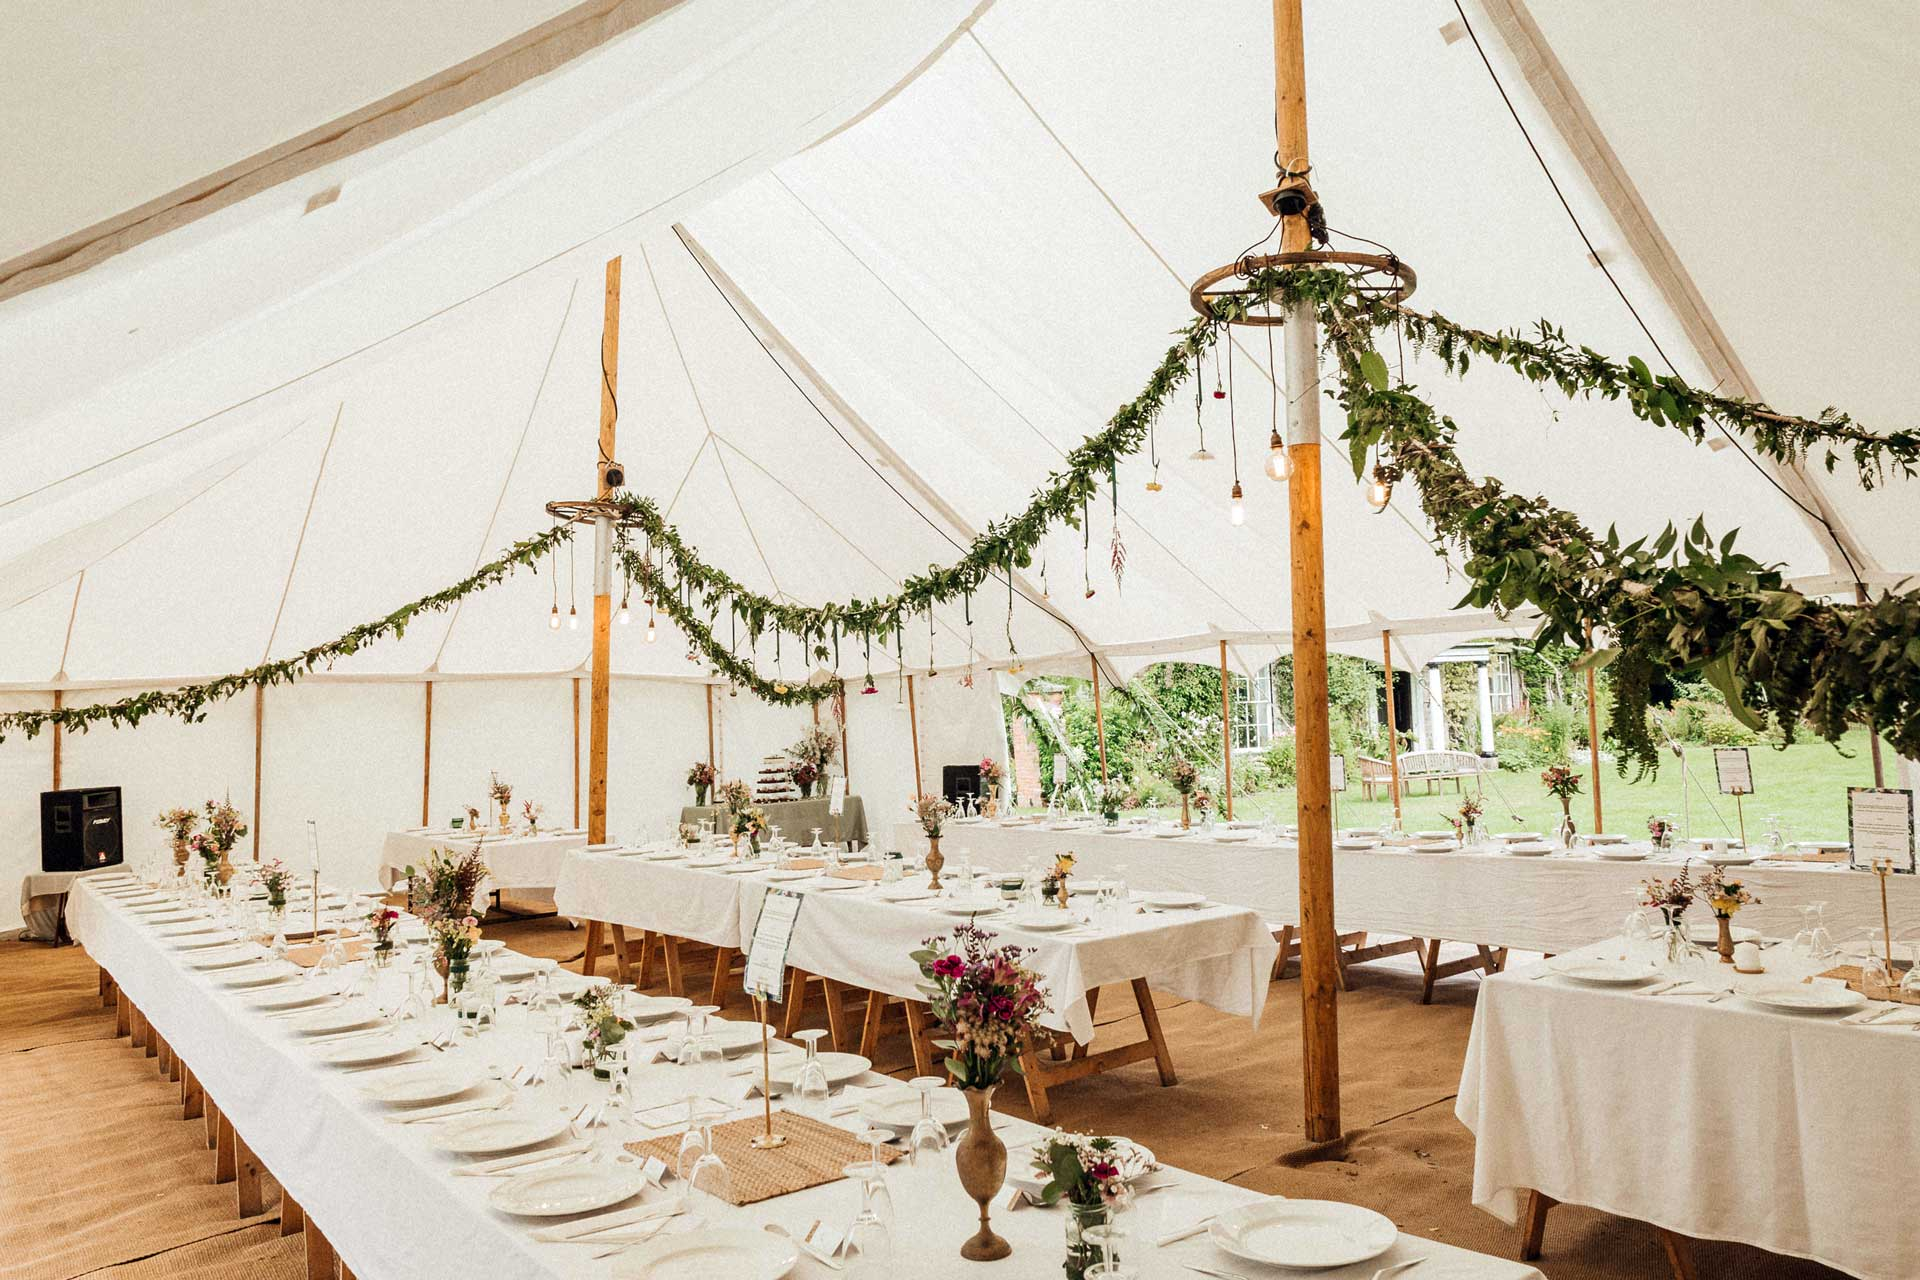 Petal marquee wedding tent with interior bohemian styling and flower garlands